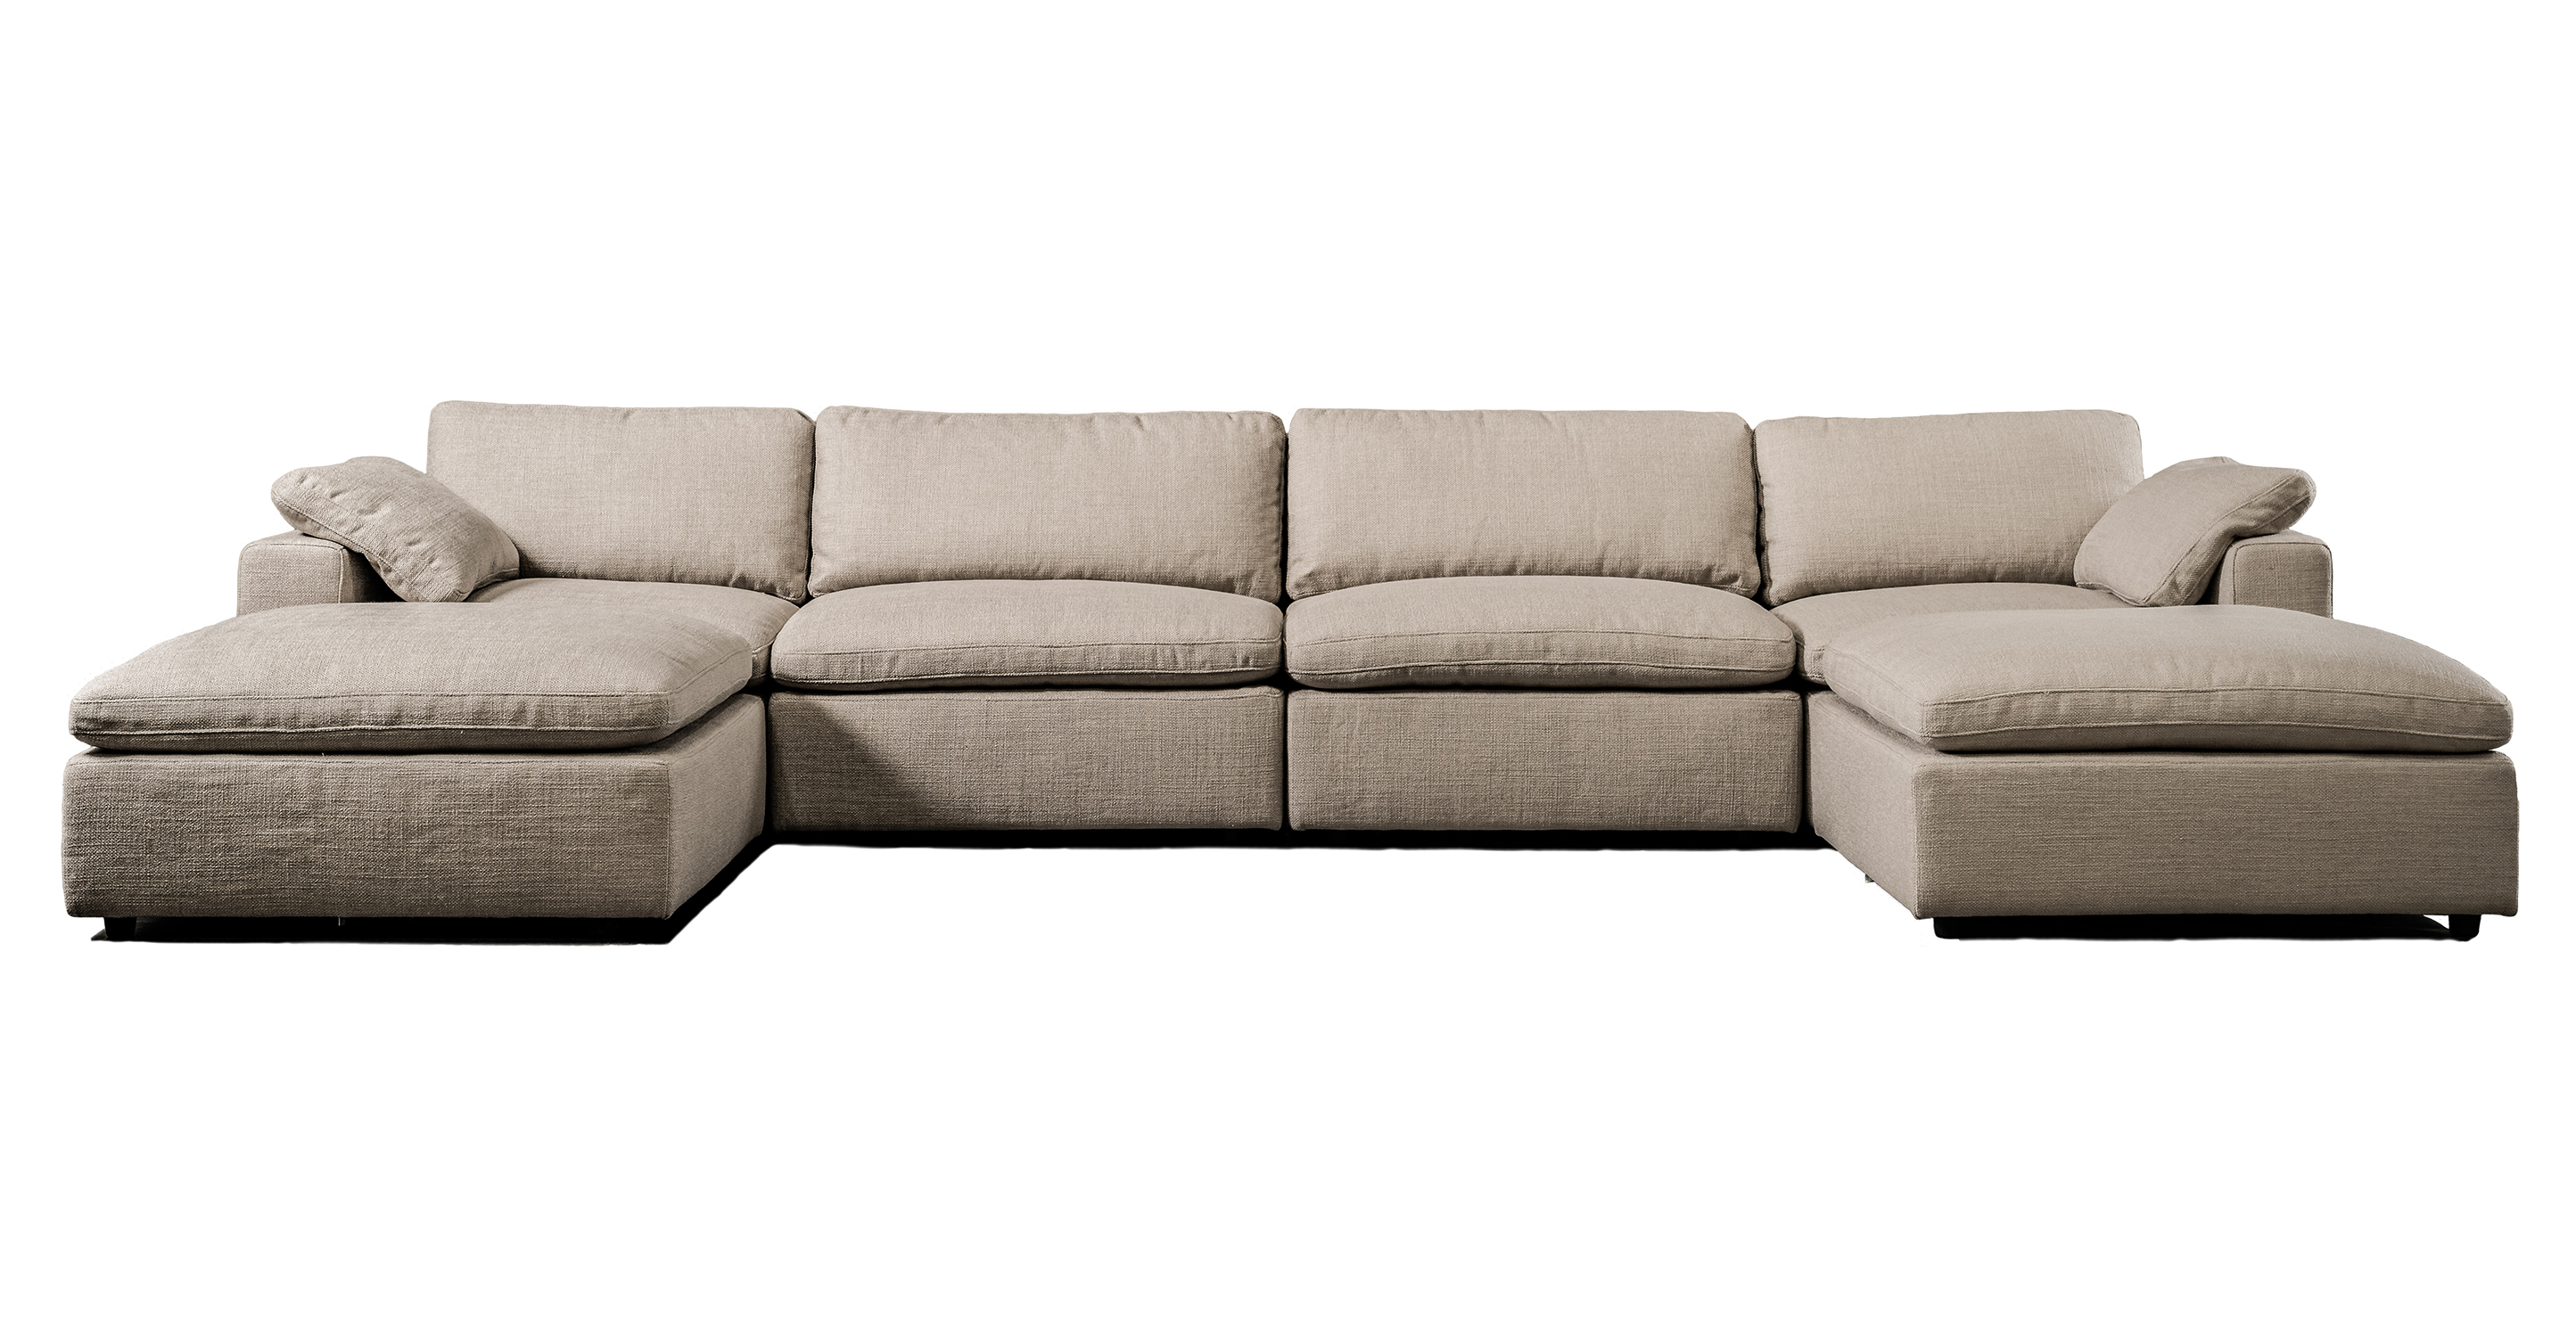 "Nest Modular 159"" Jay 6-pc Fabric Sofa Sectional, Dunes"